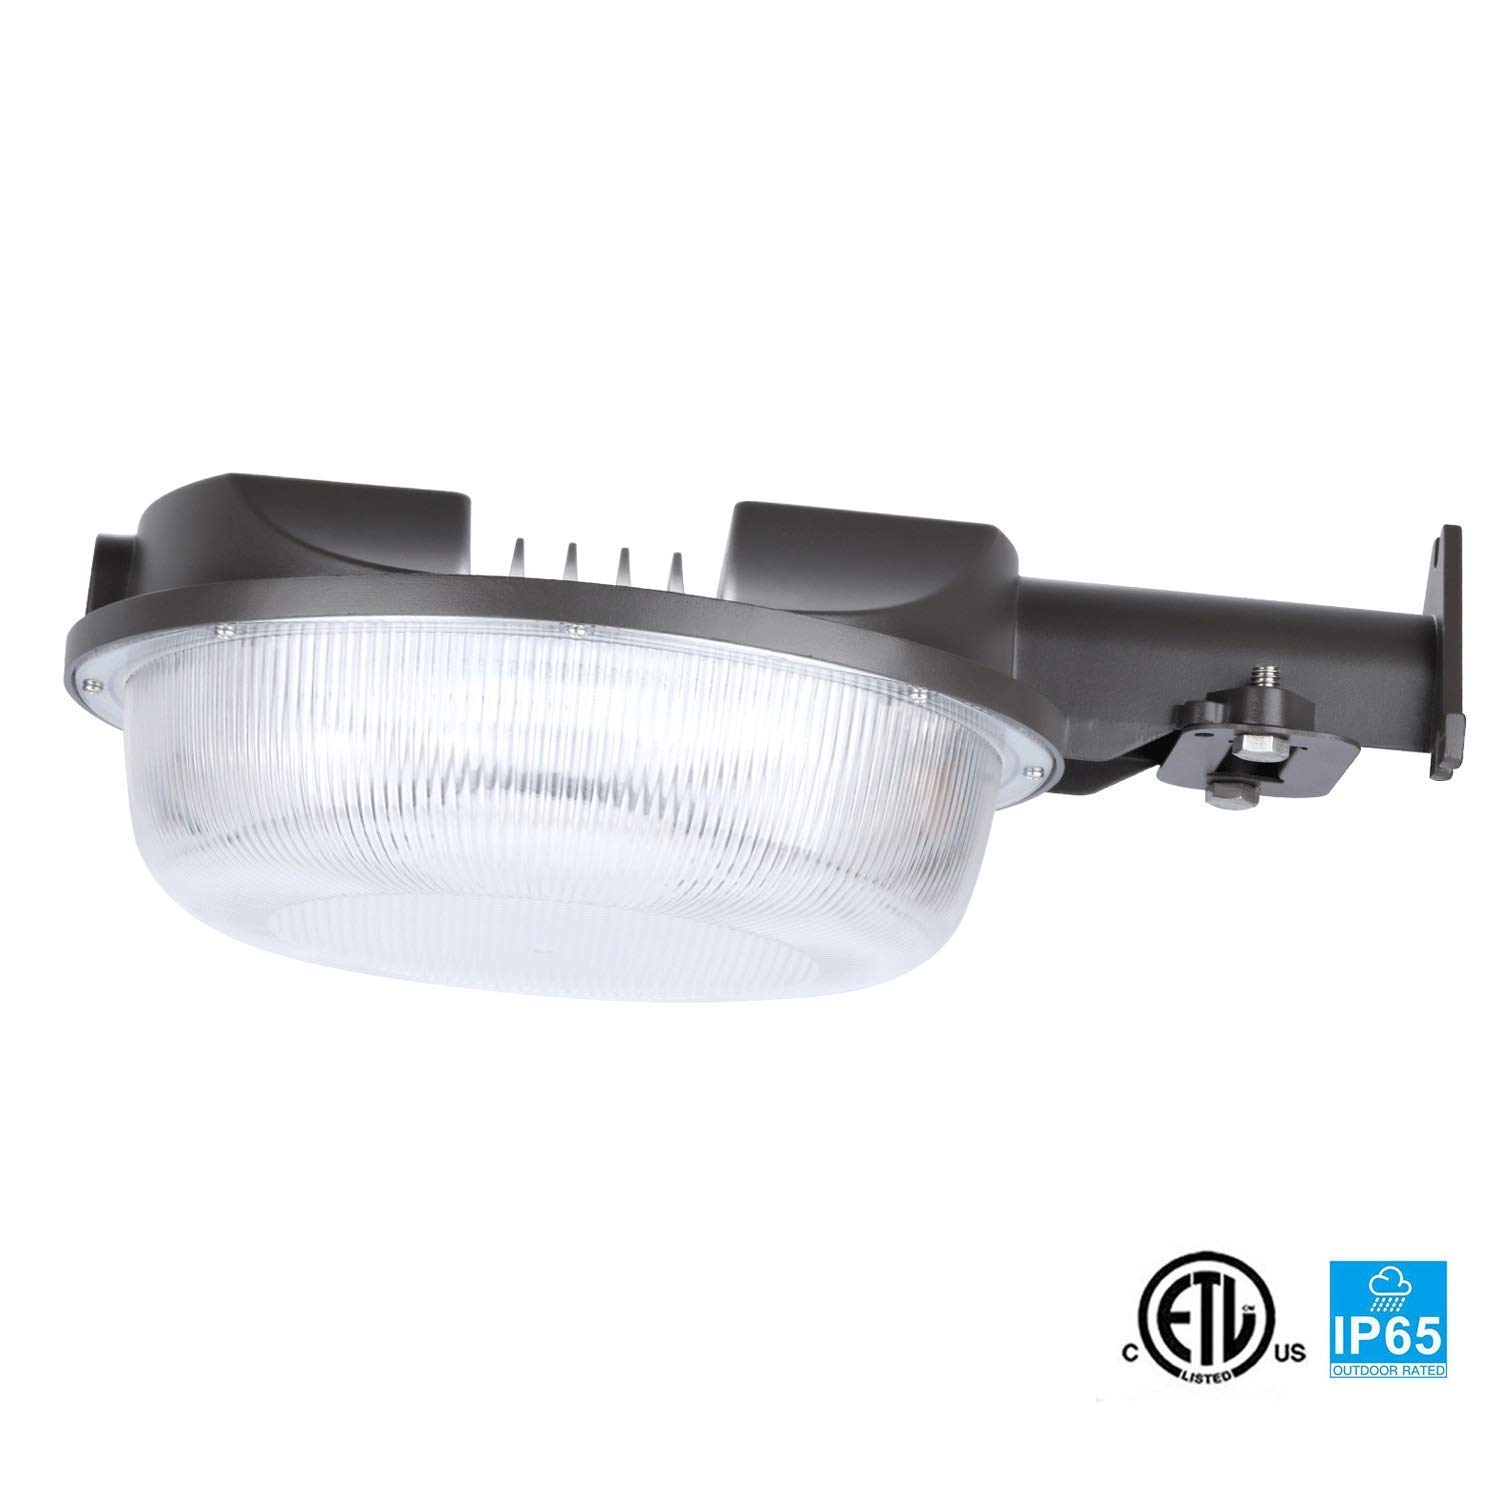 JMKMGL LED Barn Light (Photocell Included), 42W(300W Equiv.)5000K 4650lm Flood Lighting,110-277VAC,Dusk to Dawn Yard Lights for Outdoor Security,IP65 Rated,5-Year Warranty(42W)